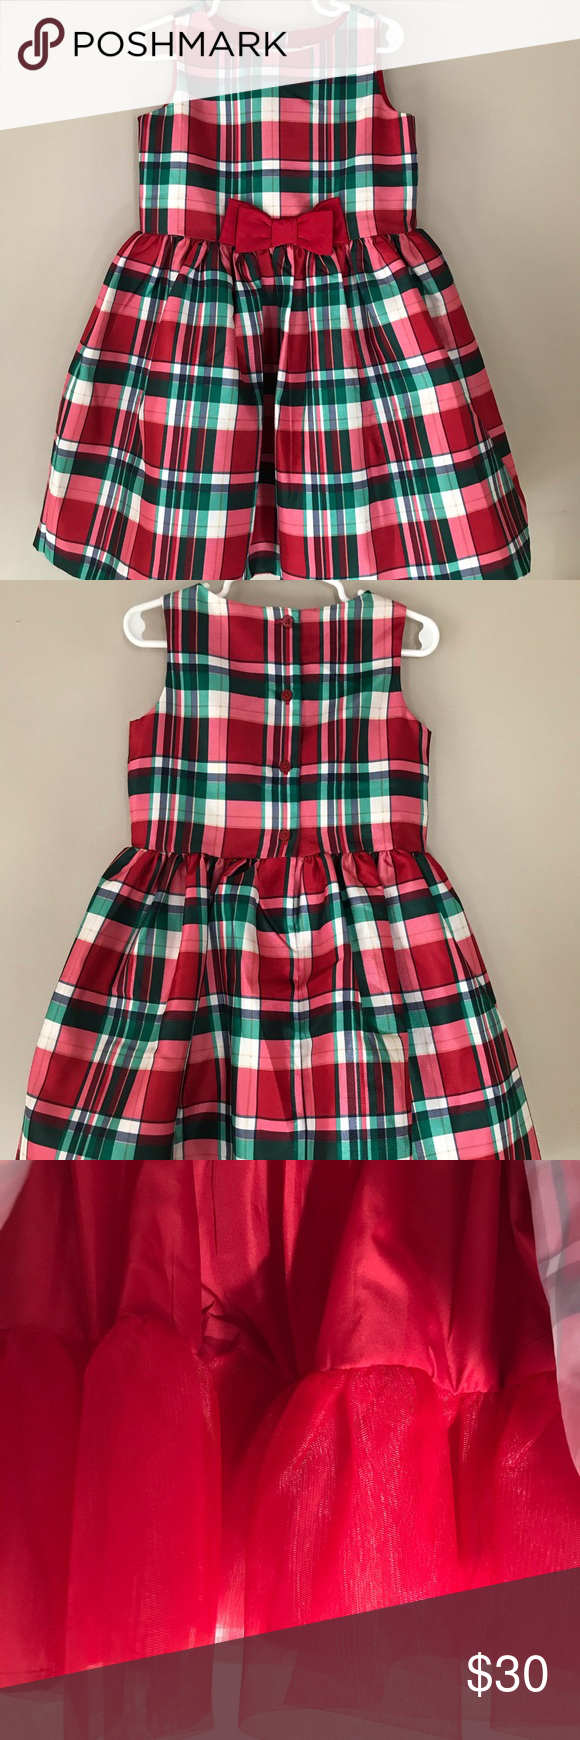 Nwot Beautiful Gymboree Holiday Dress Red White Green Plaid Dress With A Red Tulle Petticoat Underneath Gymboree Dr Green Plaid Dress Holiday Dresses Dresses [ 1740 x 580 Pixel ]